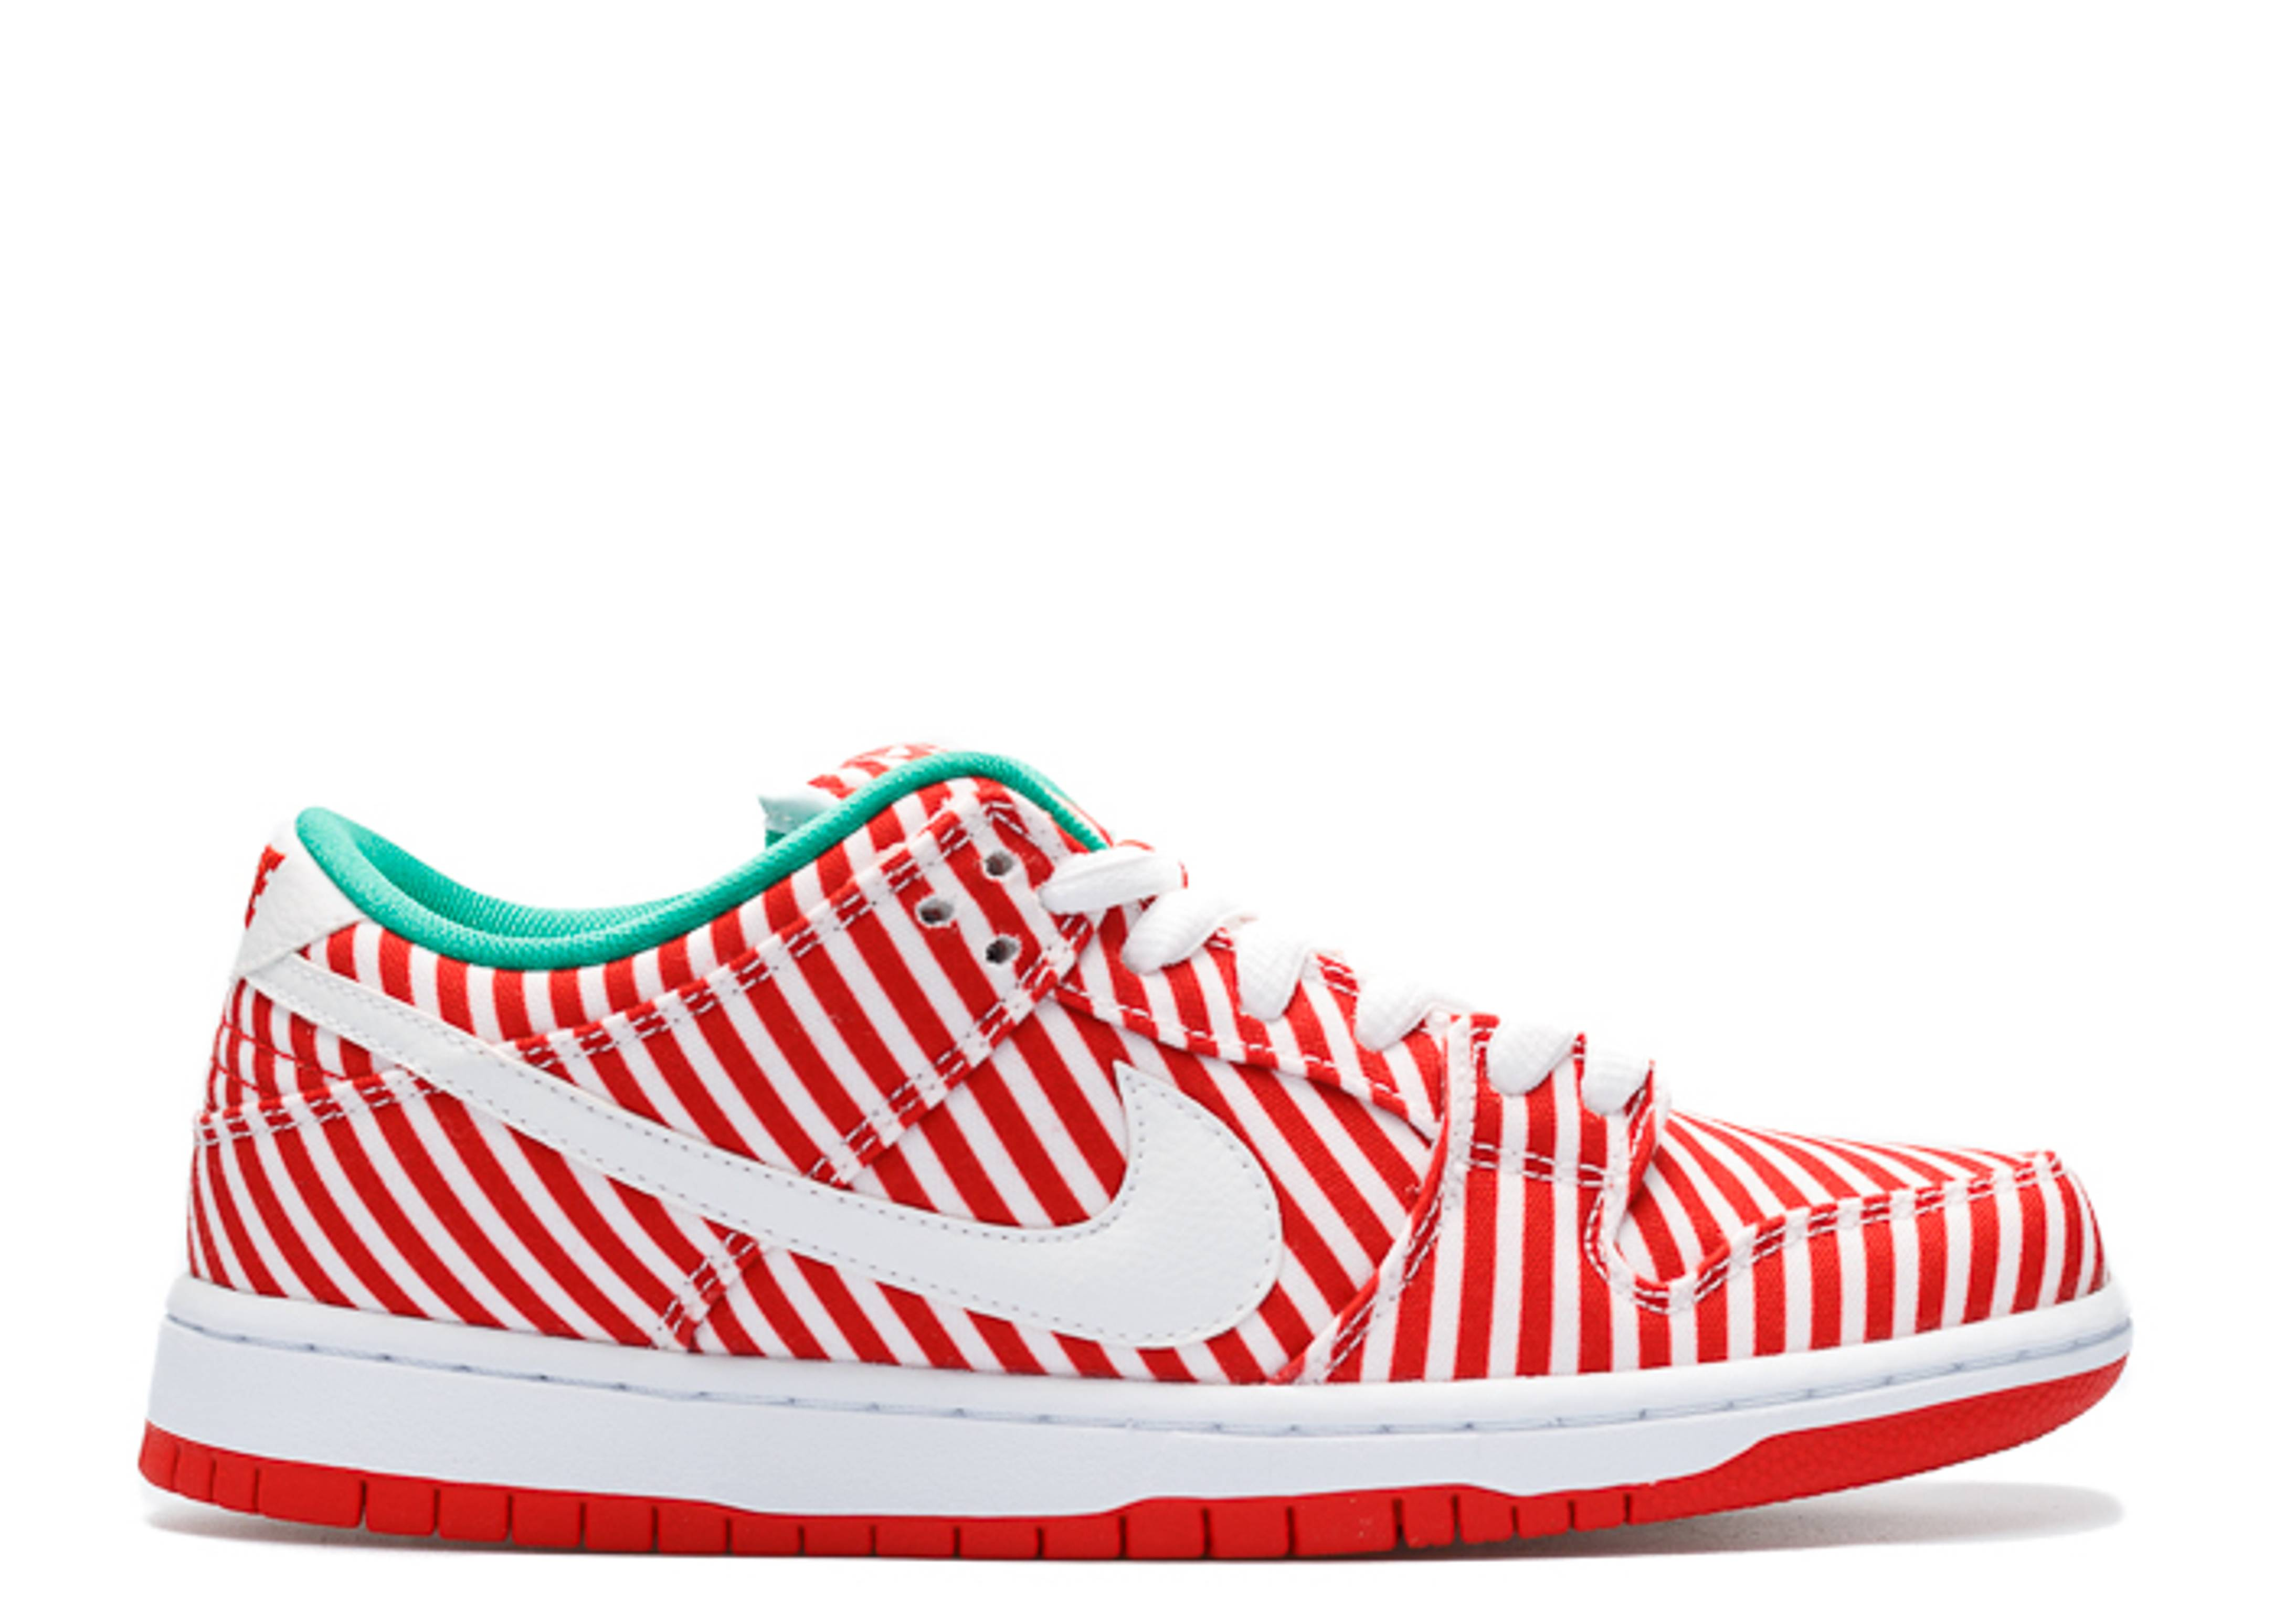 SB Dunk Low 'Candy Cane'